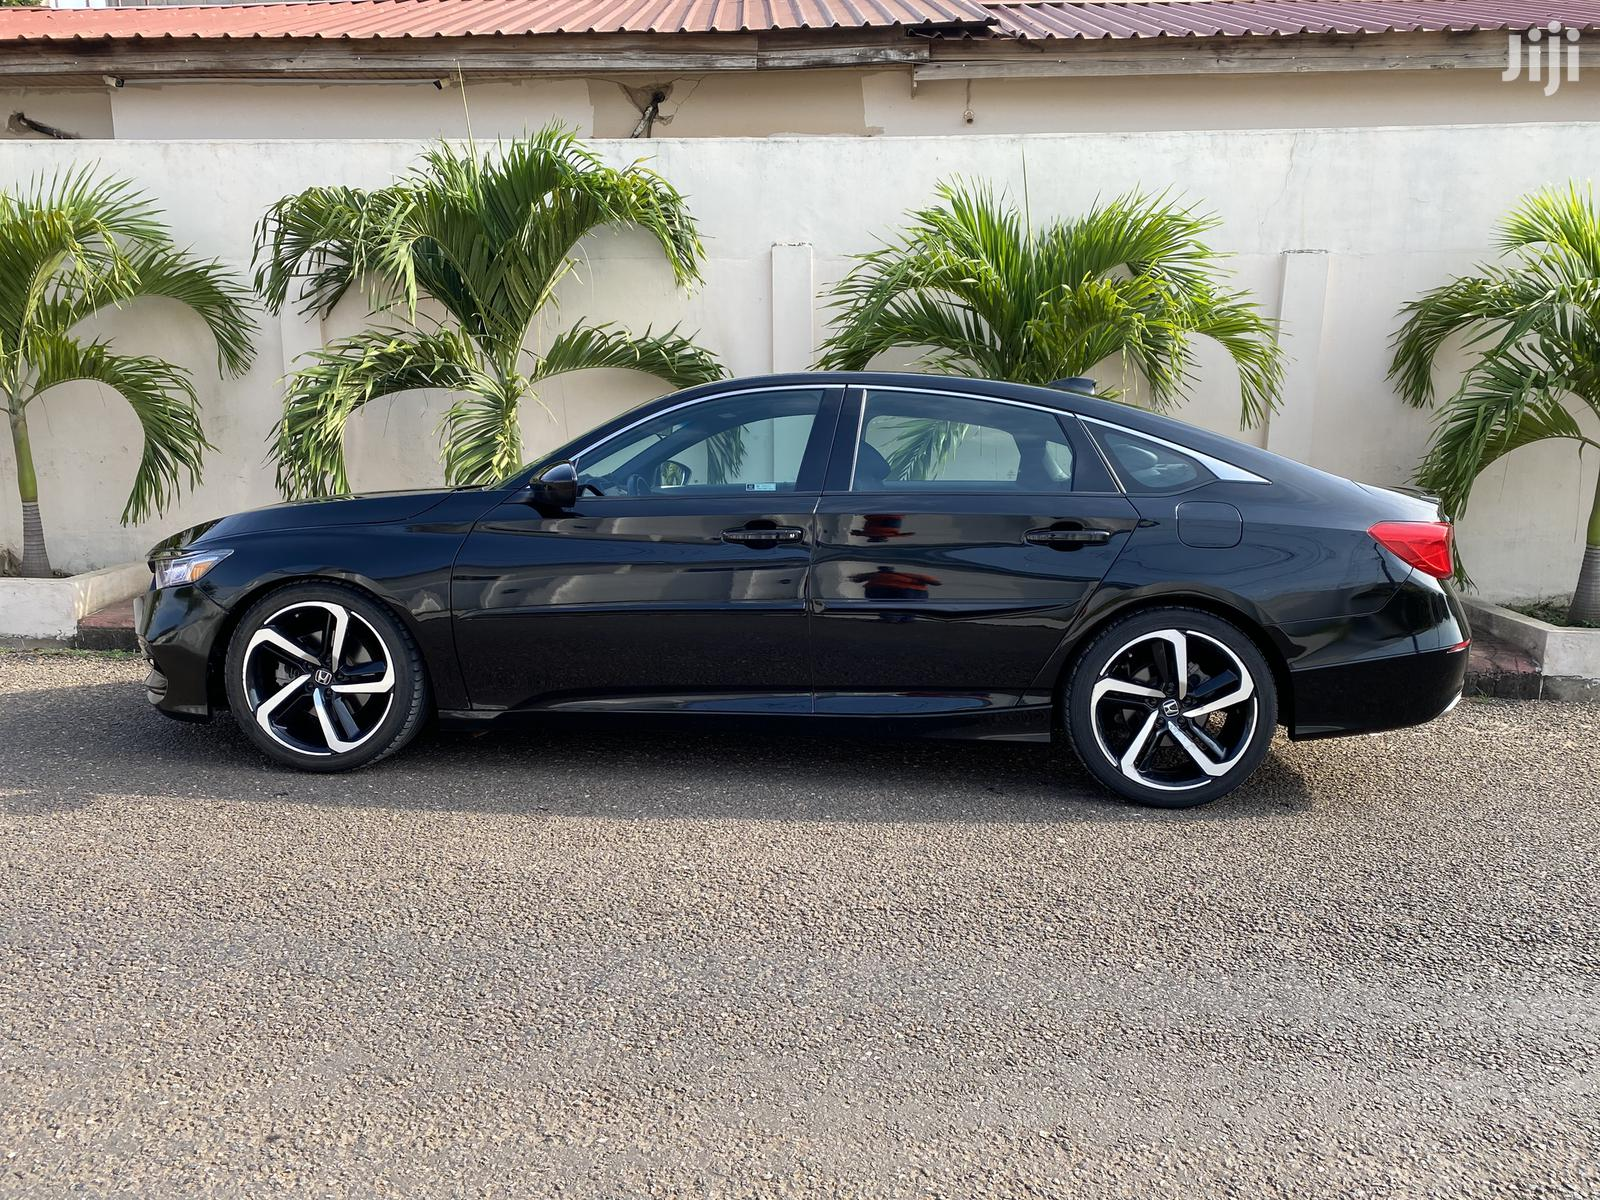 Honda Accord 2018 Sport Black | Cars for sale in East Legon, Greater Accra, Ghana